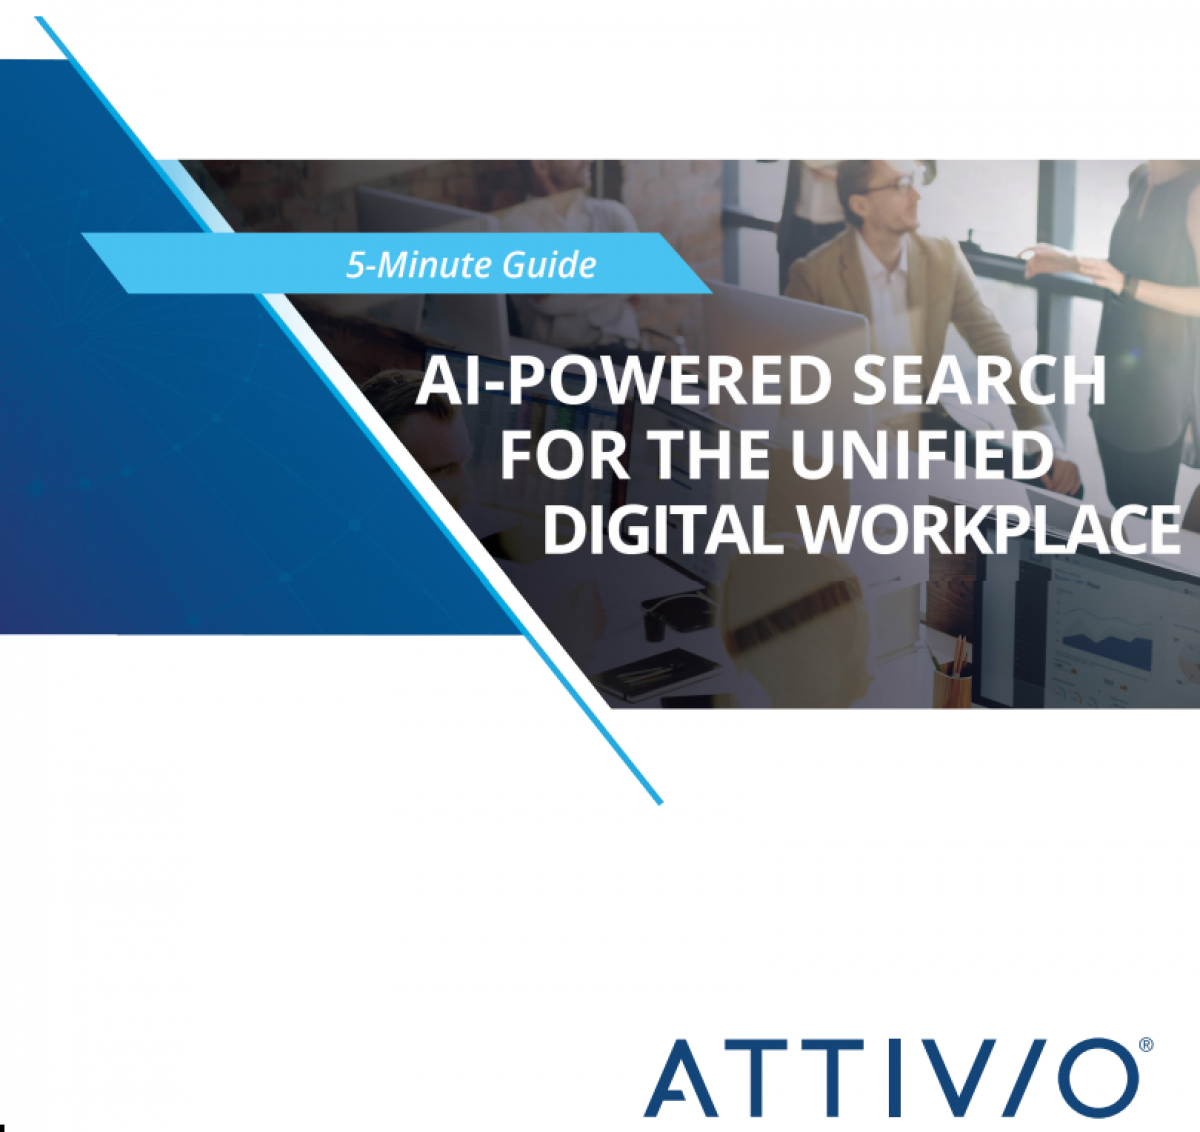 5-Minute Guide to AI-Powered Search for the unified Digital Workplace